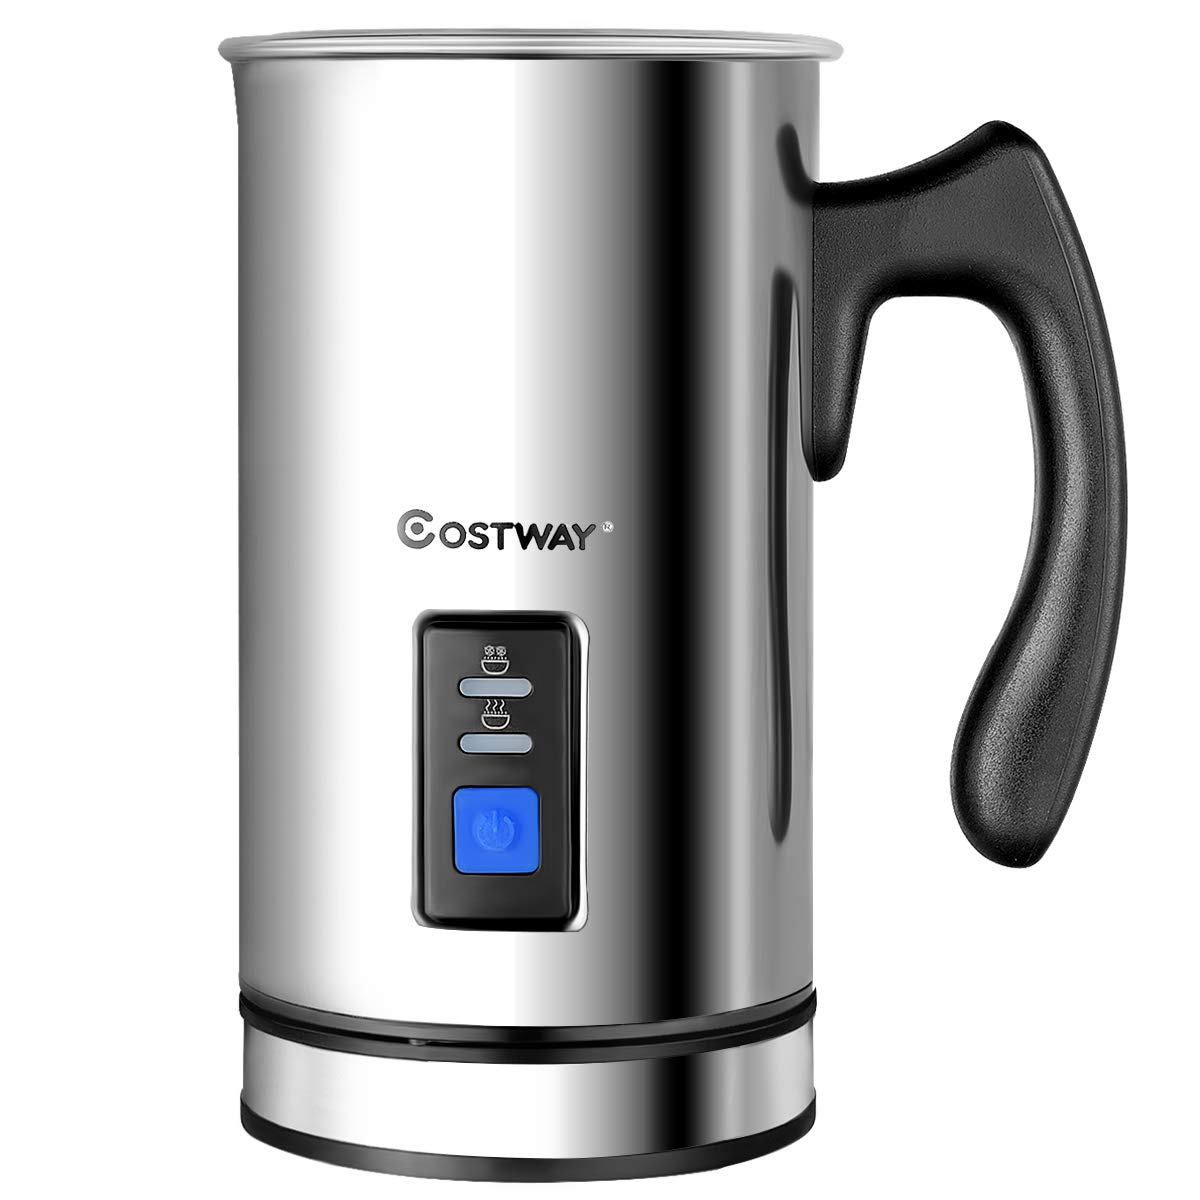 COSTWAY Milk Frother, Electric Automatic Stainless Steel,Non-Stick Interior, Milk Steamer Foamer for Coffee, Latte, Cappuccino with Handheld (Stainless-Update) by COSTWAY (Image #1)